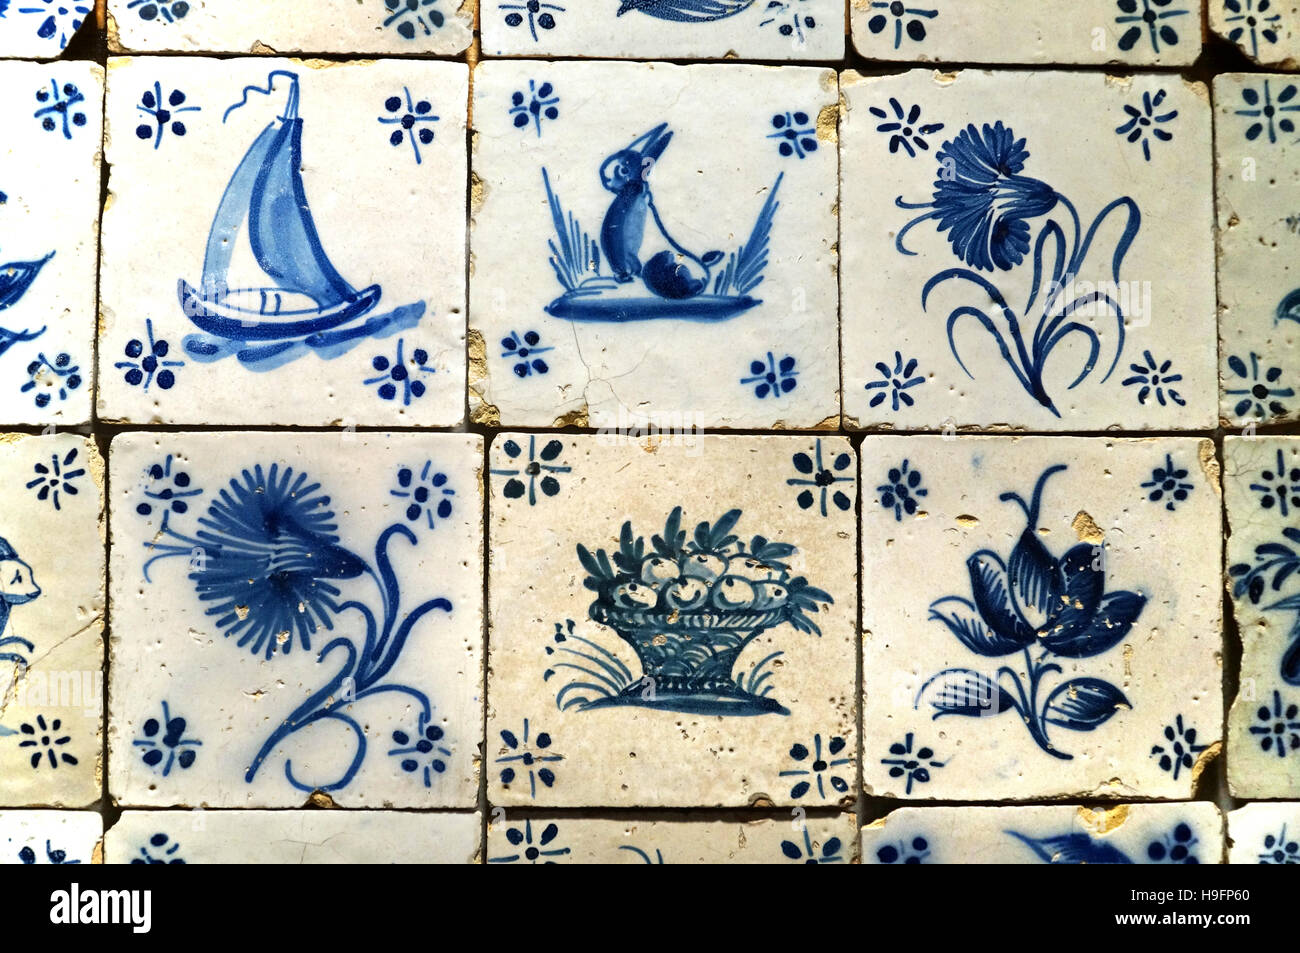 Tiles, portuguese azulejos, Portugal - Stock Image